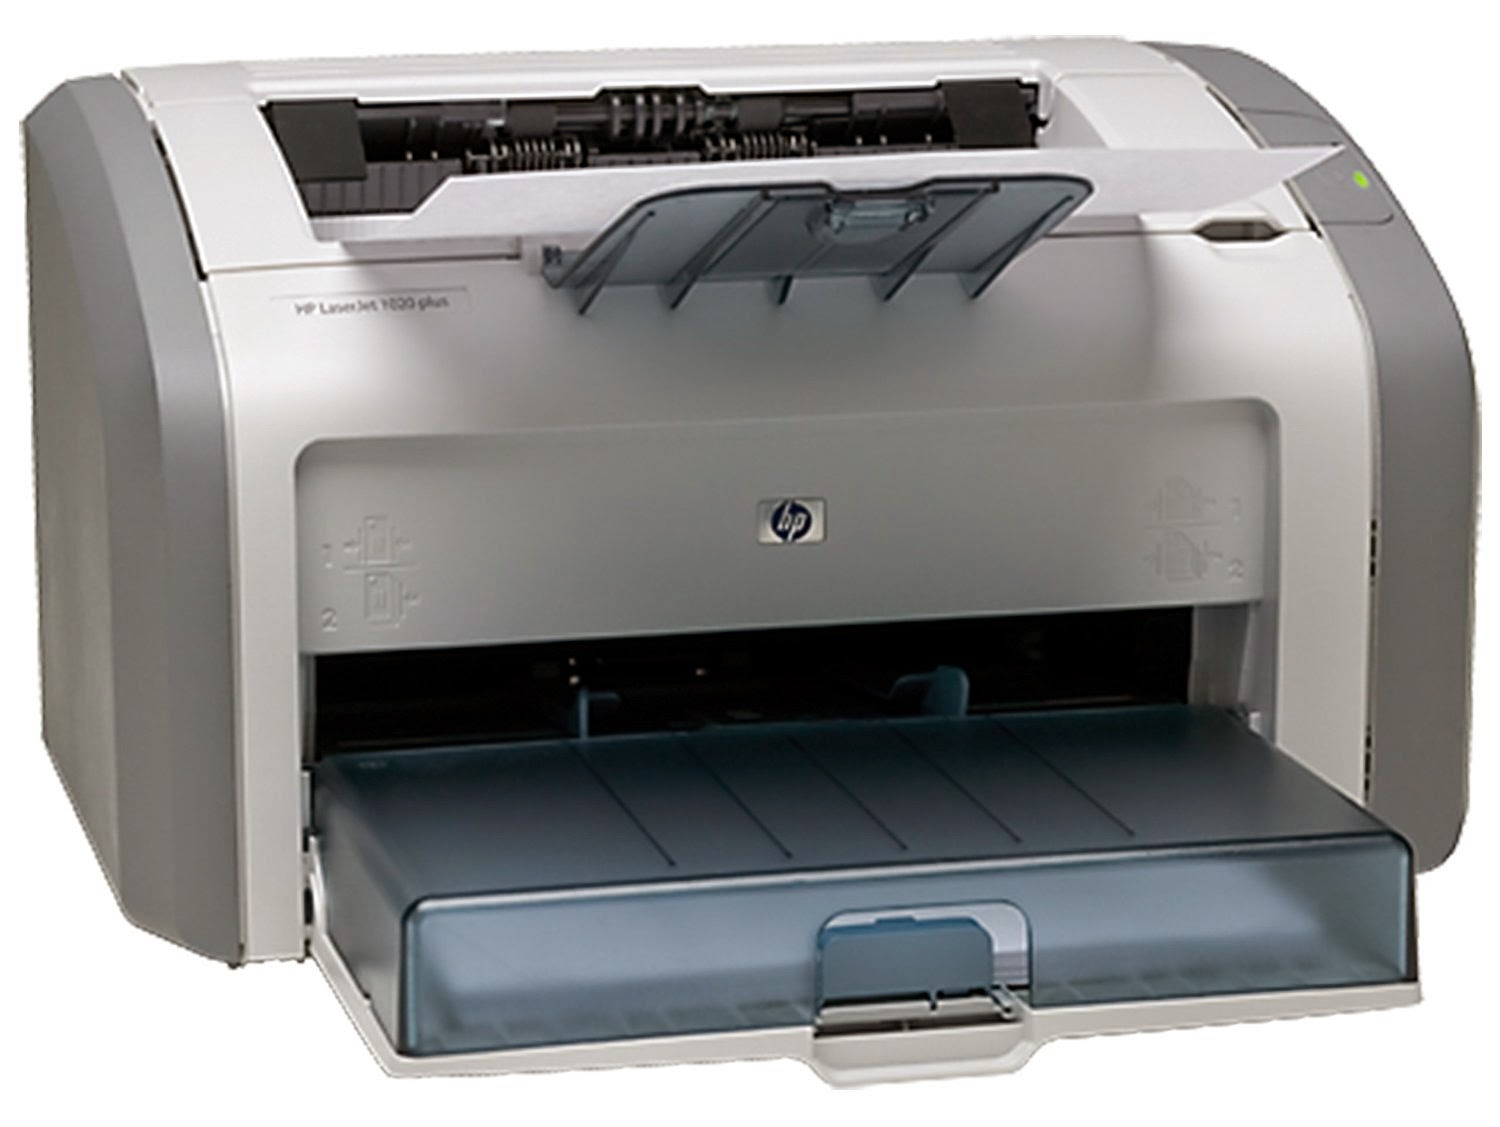 download driver for hp laserjet 1020 plus for windows 7 64 bit